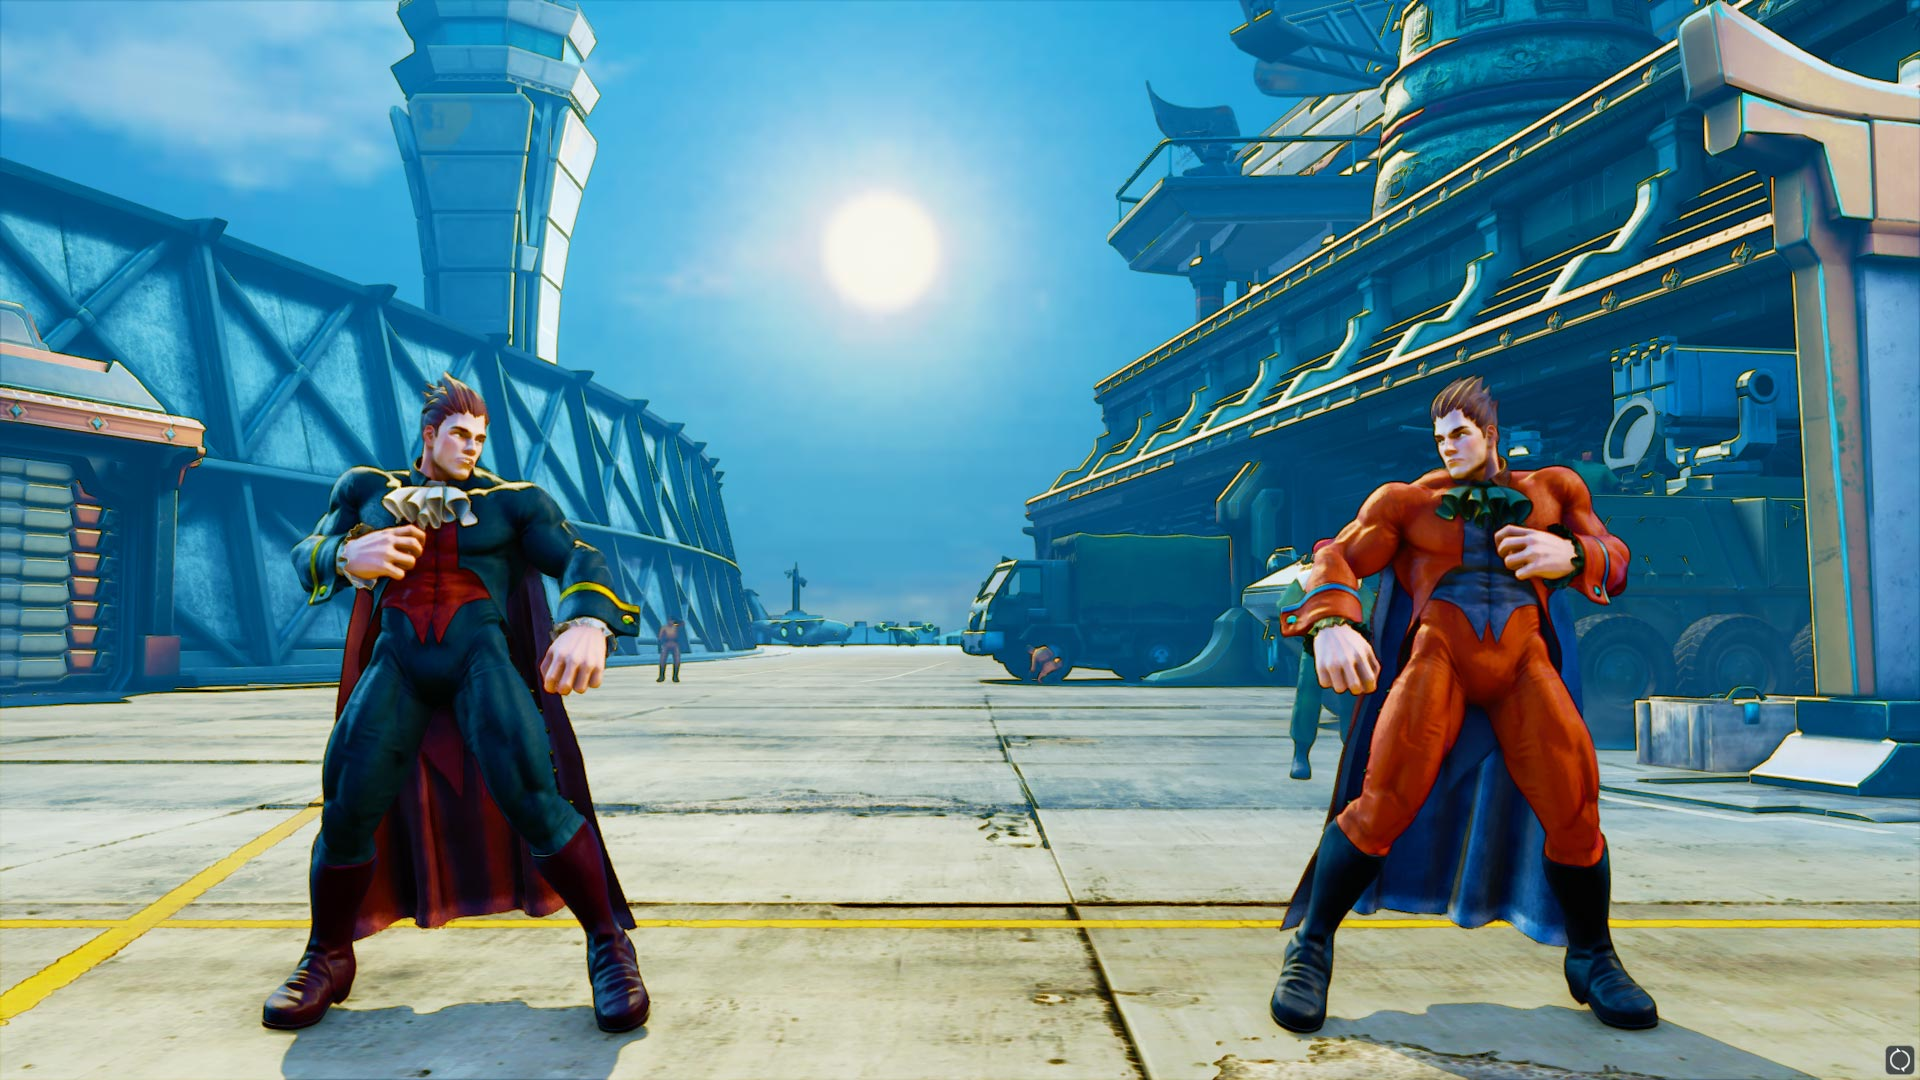 New Darkstalkers costumes in Street Fighter 5 14 out of 17 image gallery